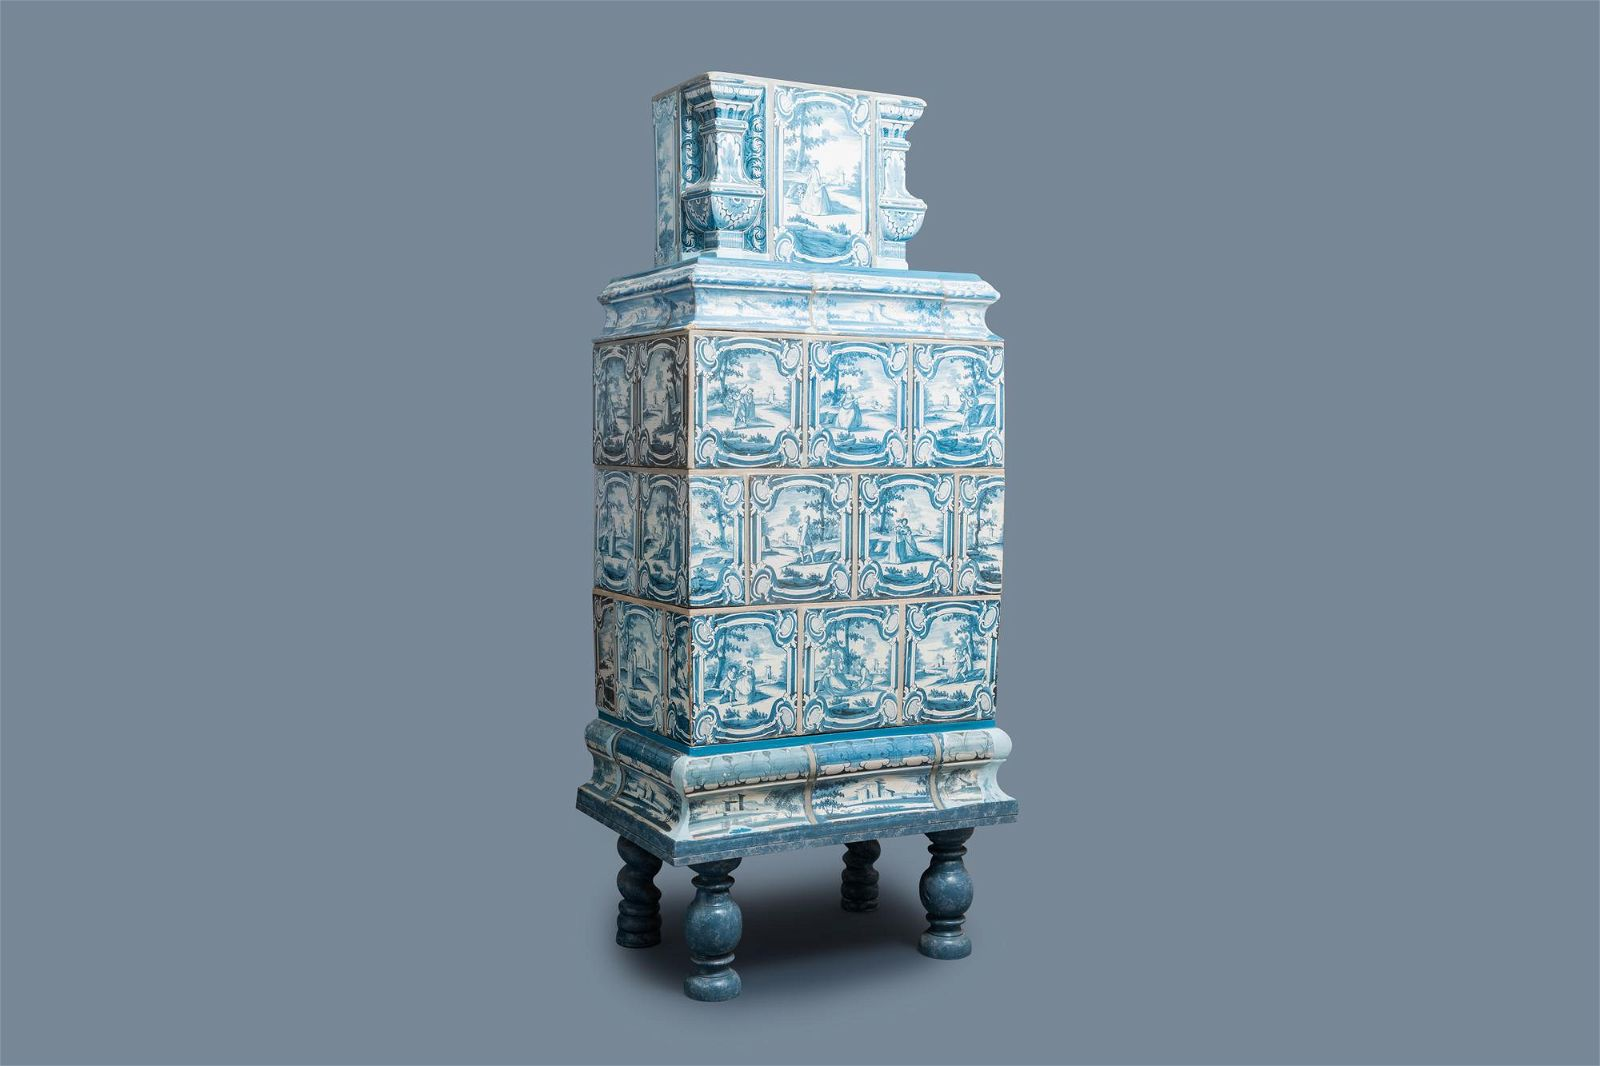 A composite stove with blue and white stove tiles,